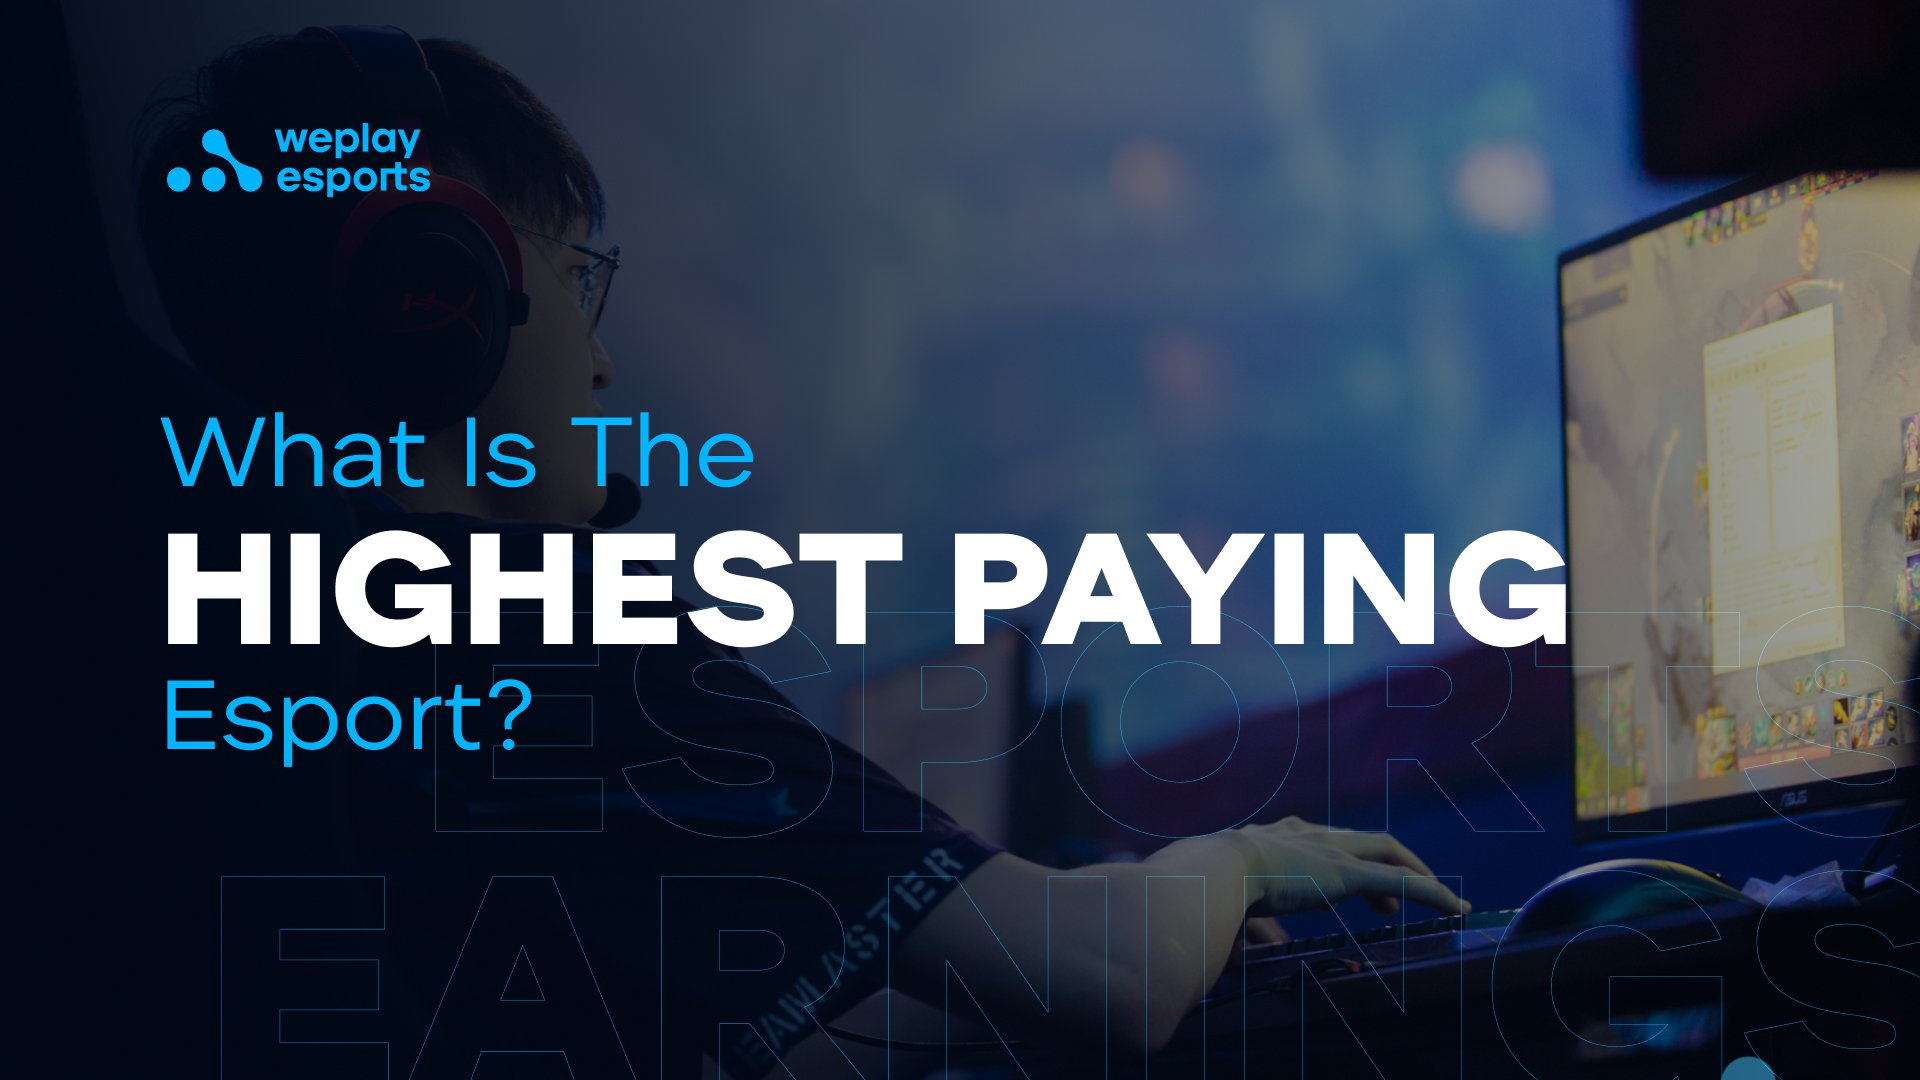 What Is The Highest Paying Esport?